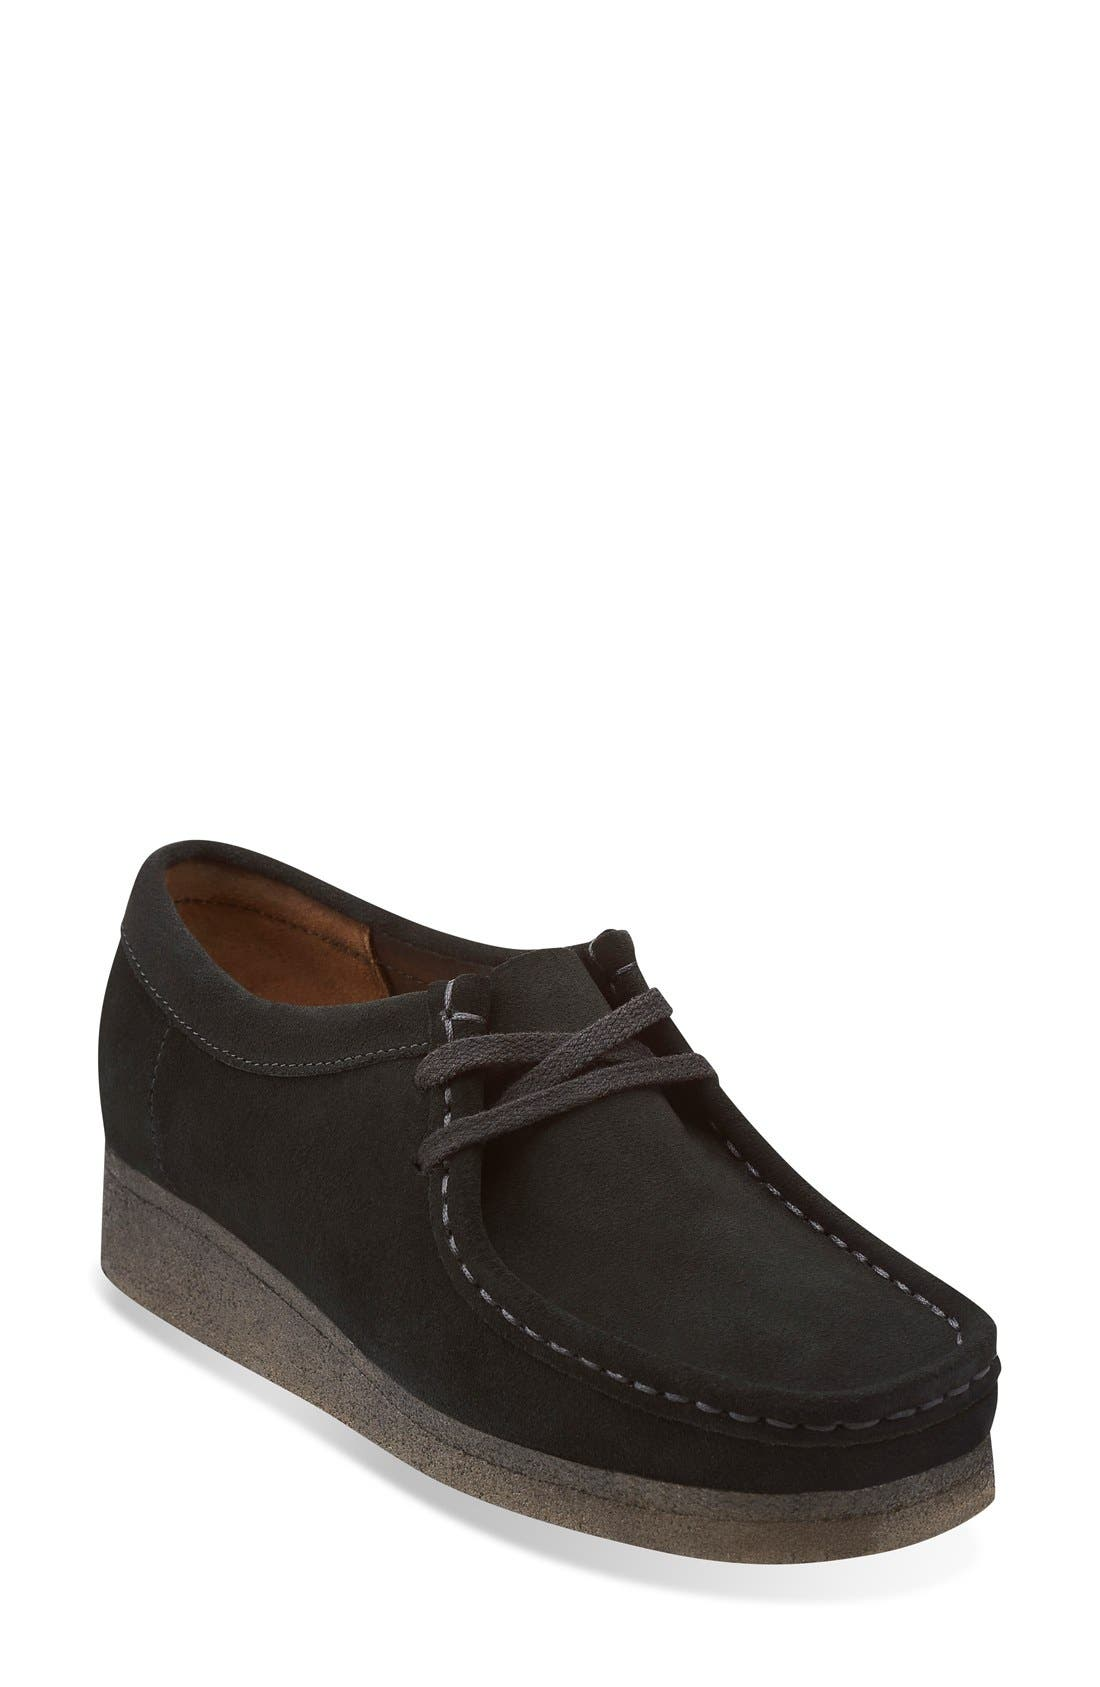 Cool Clarks Menu0026#39;s Bushacre 2 Chukka Boots In Brown For Men (grey Suede) - Save 10% | Lyst